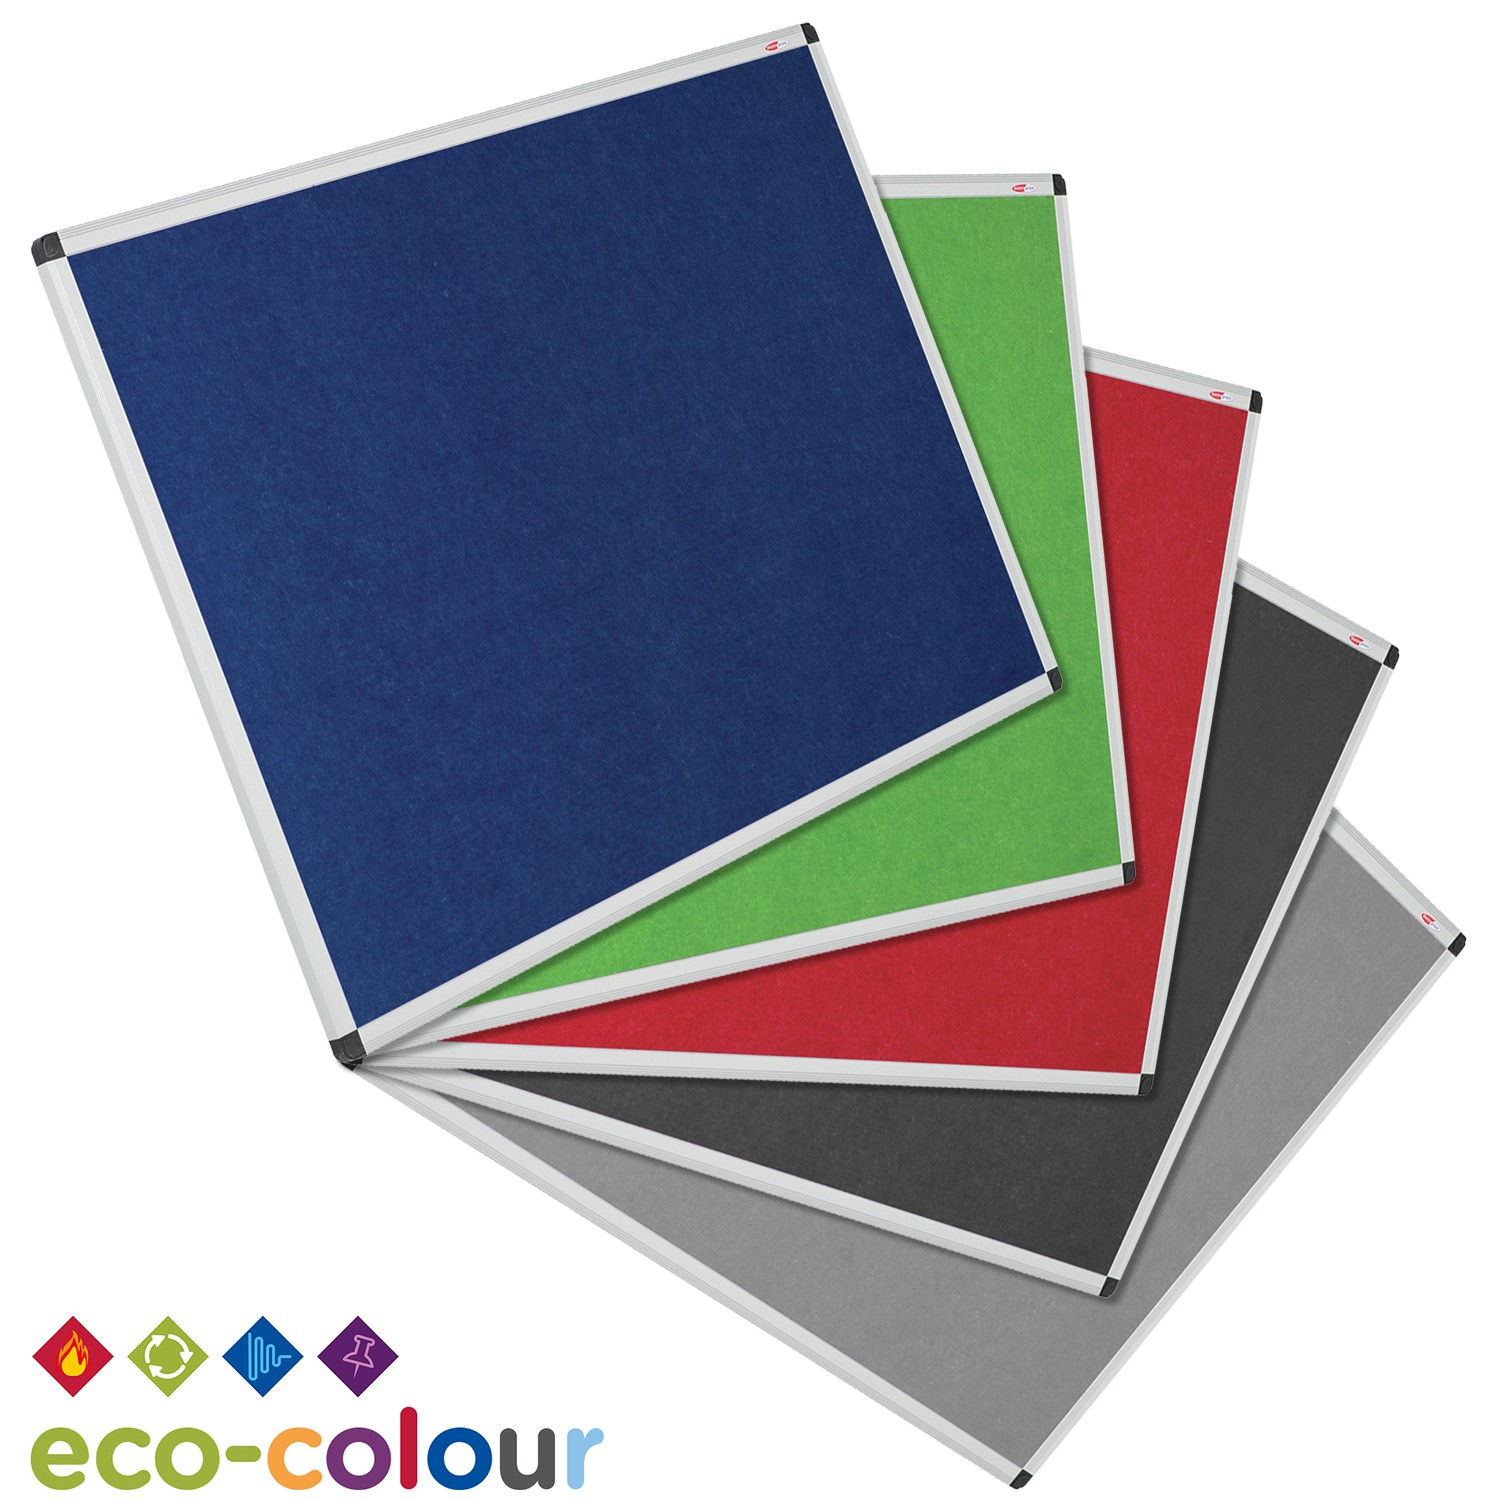 Eco-Colour™ Resist-a-Flame Noticeboards